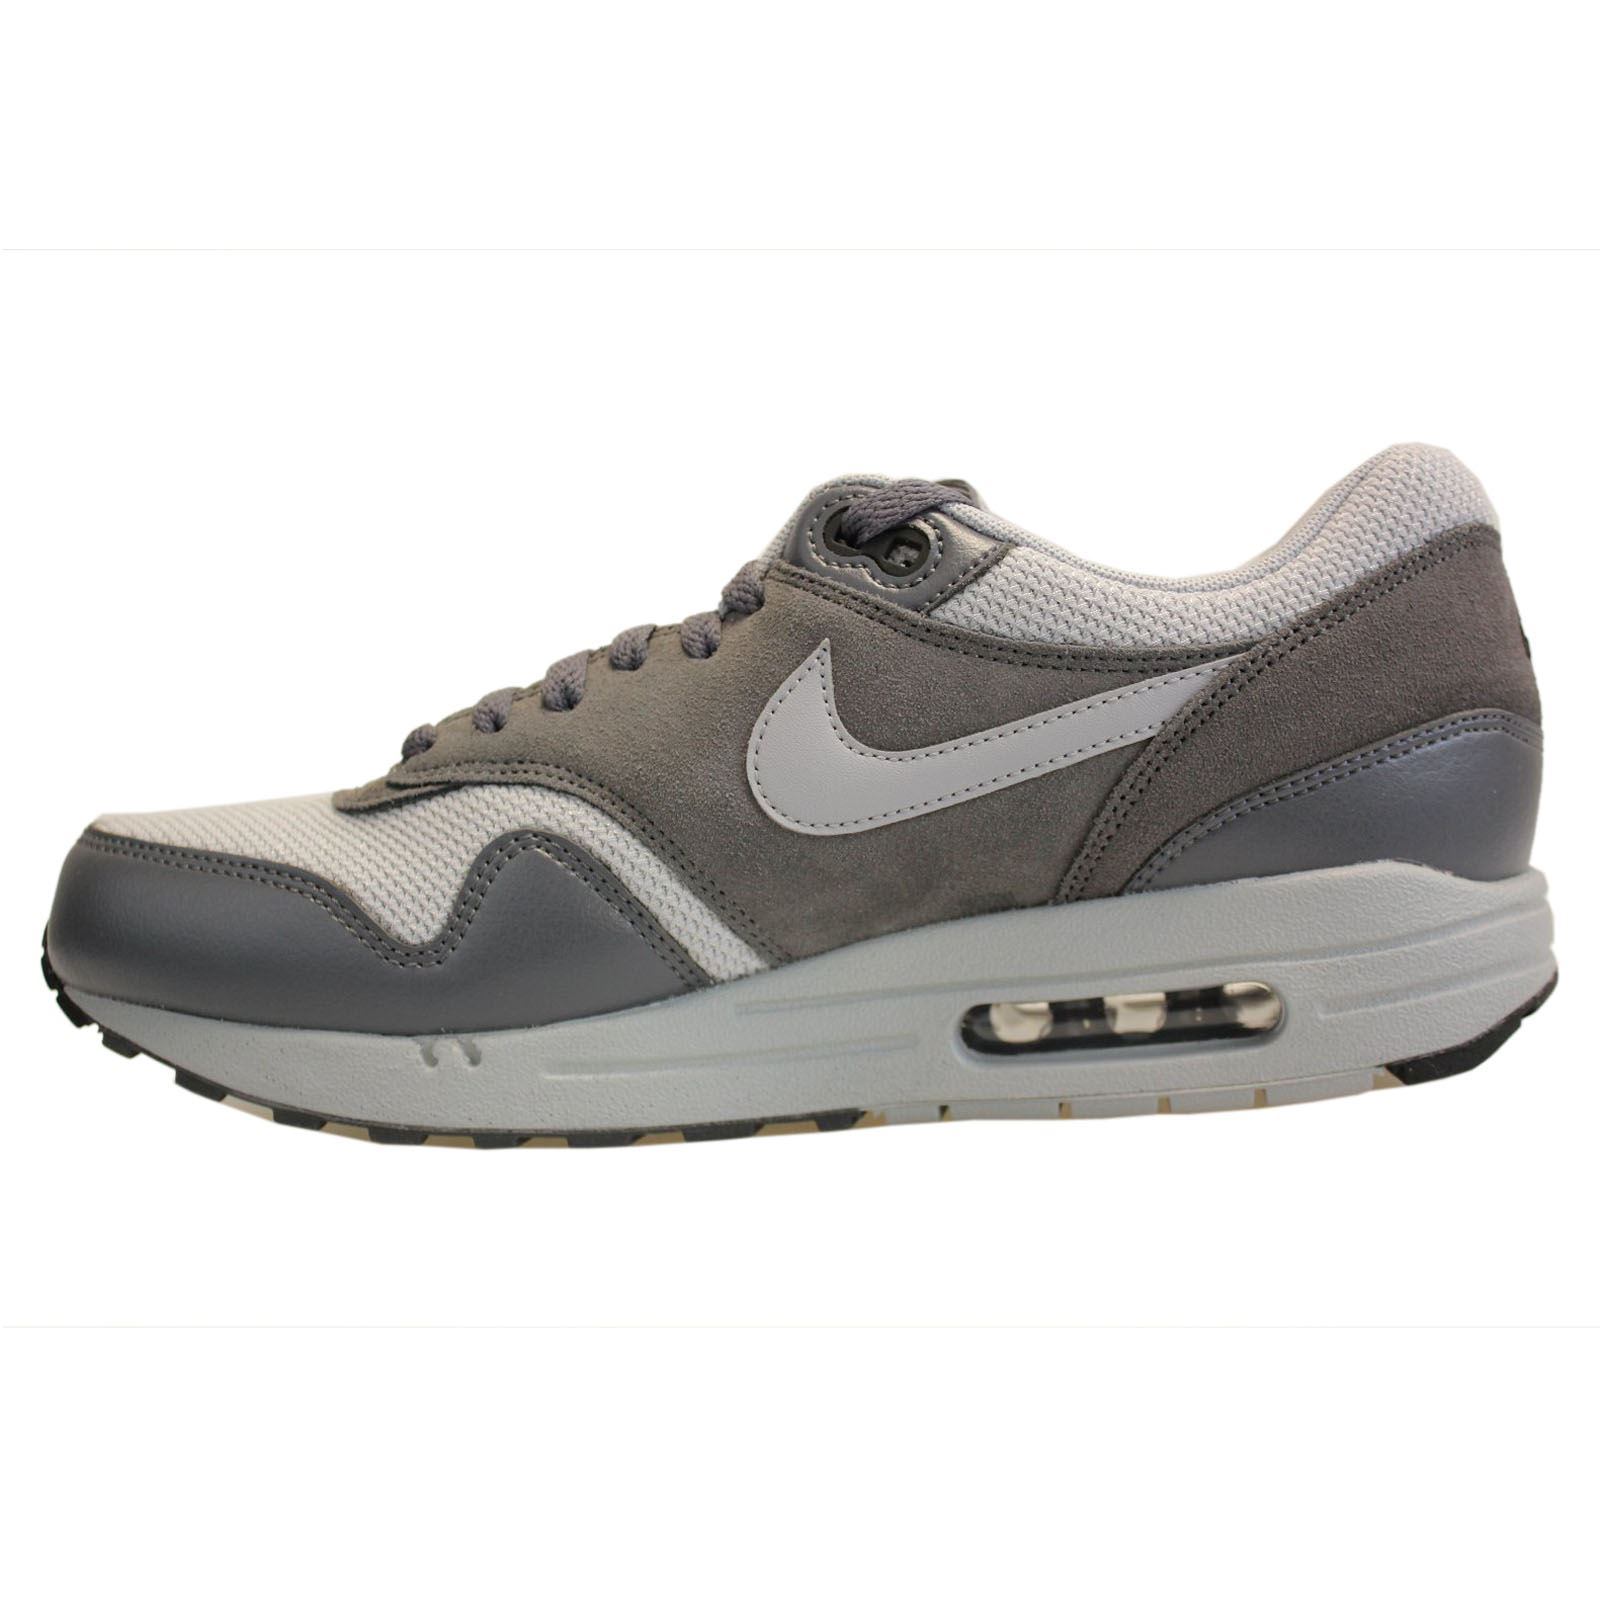 Nike-Air-Max-1-Essential-Leather-Mens-Trainers